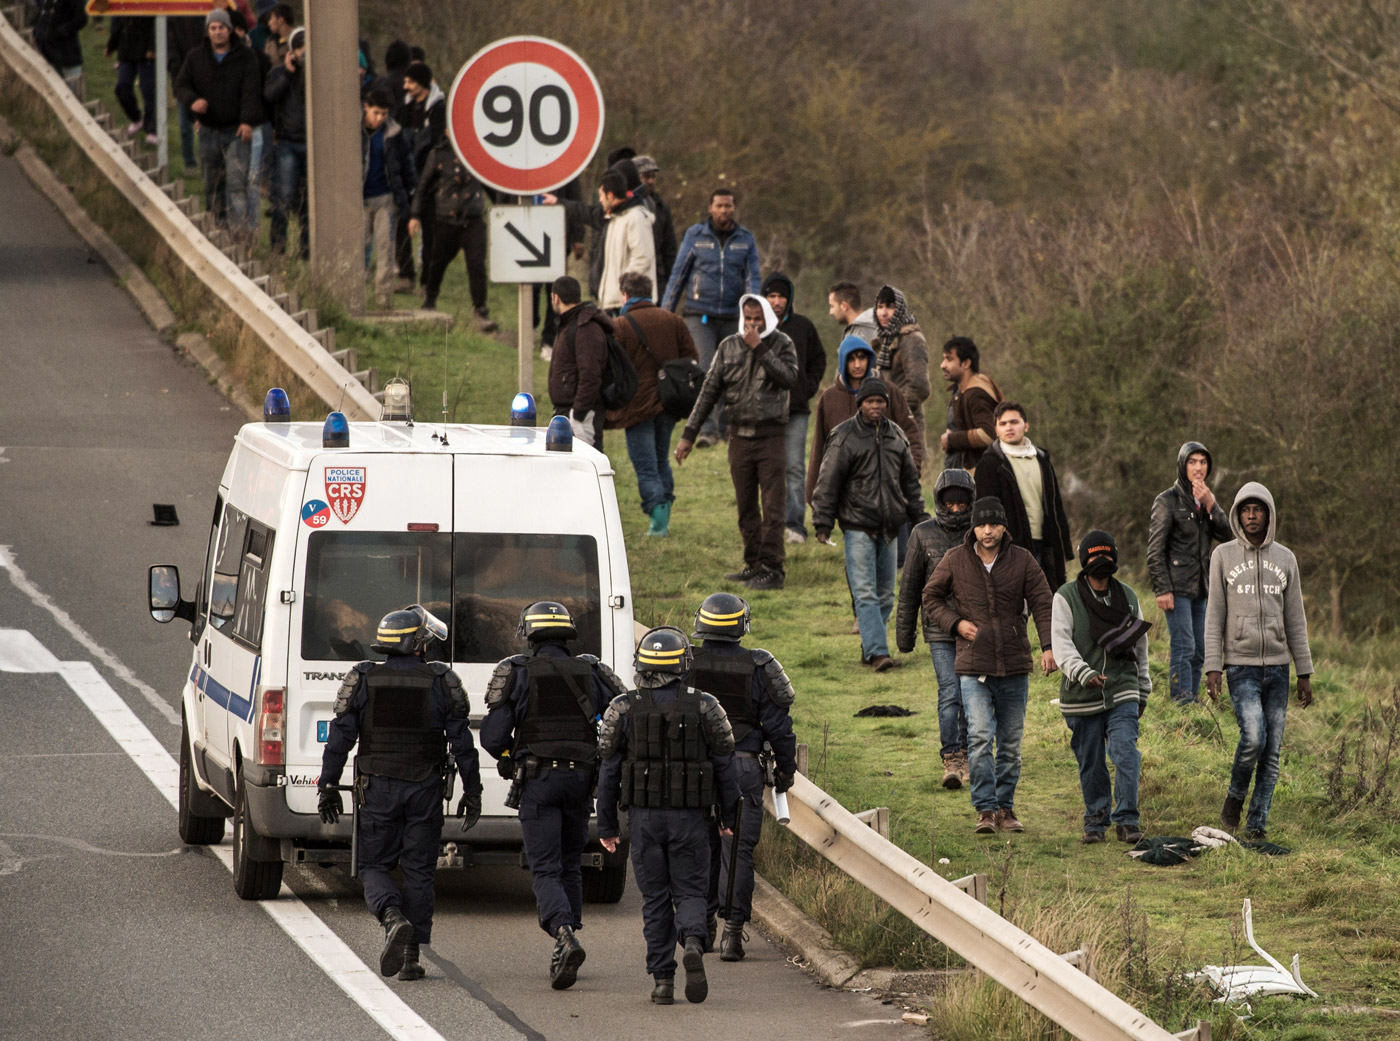 Bus Paris Calais In France Refugees Risk Death For England The Intercept